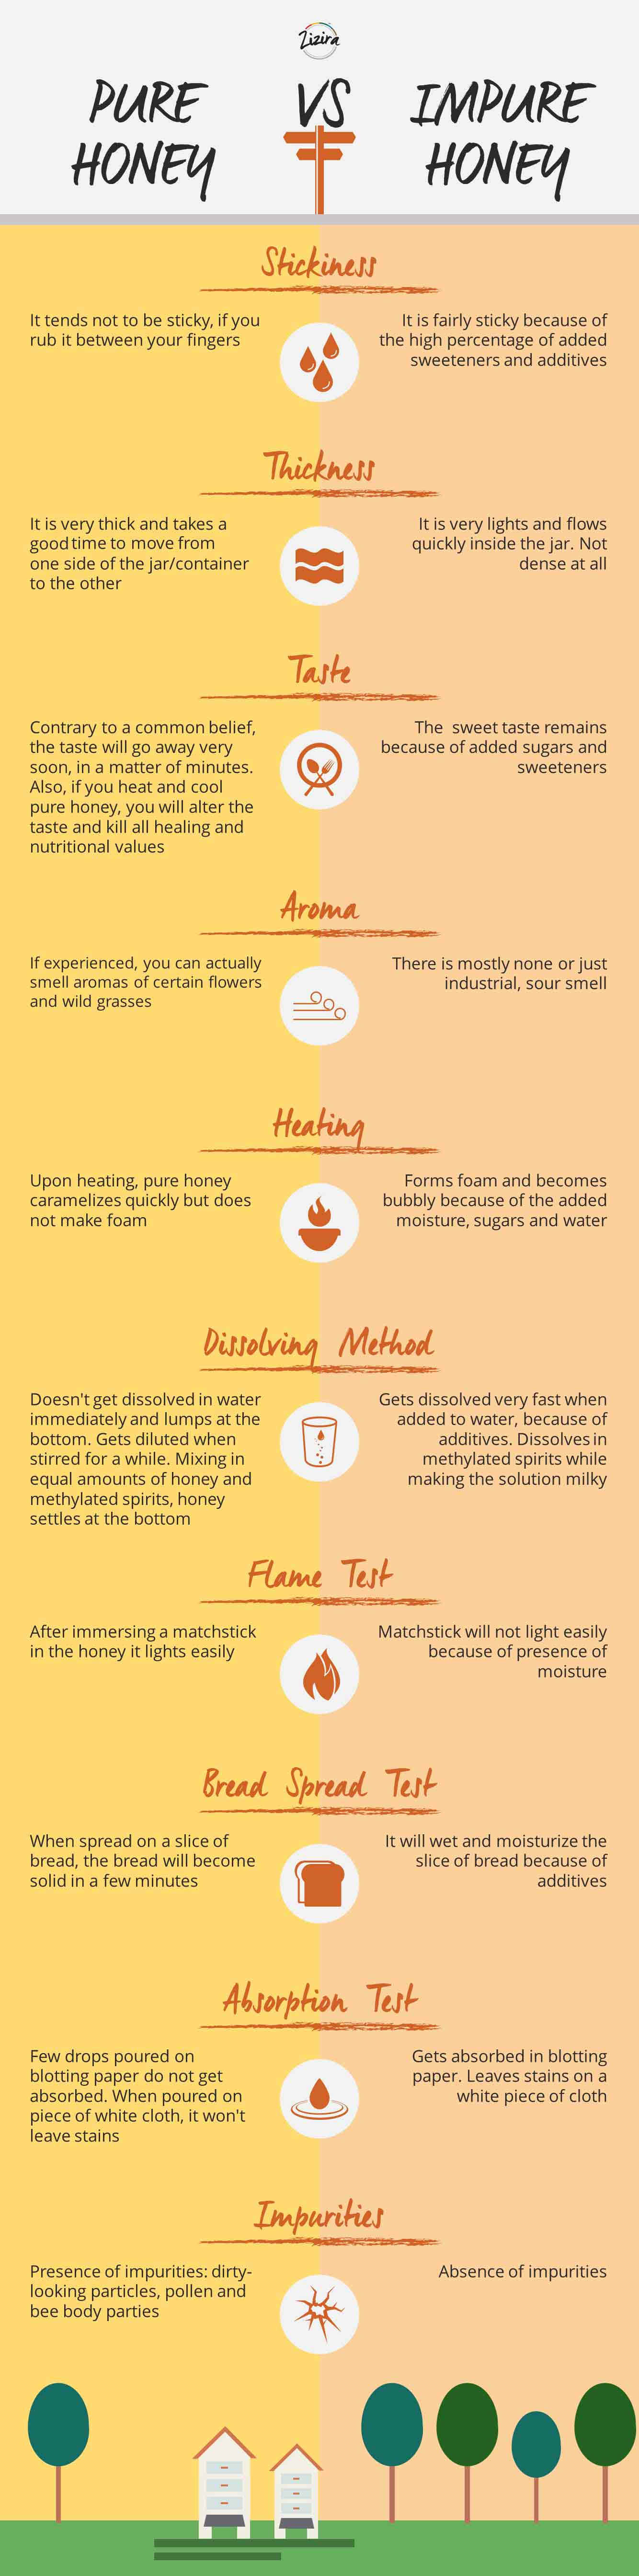 info-graphics of difference between pure and impure honey